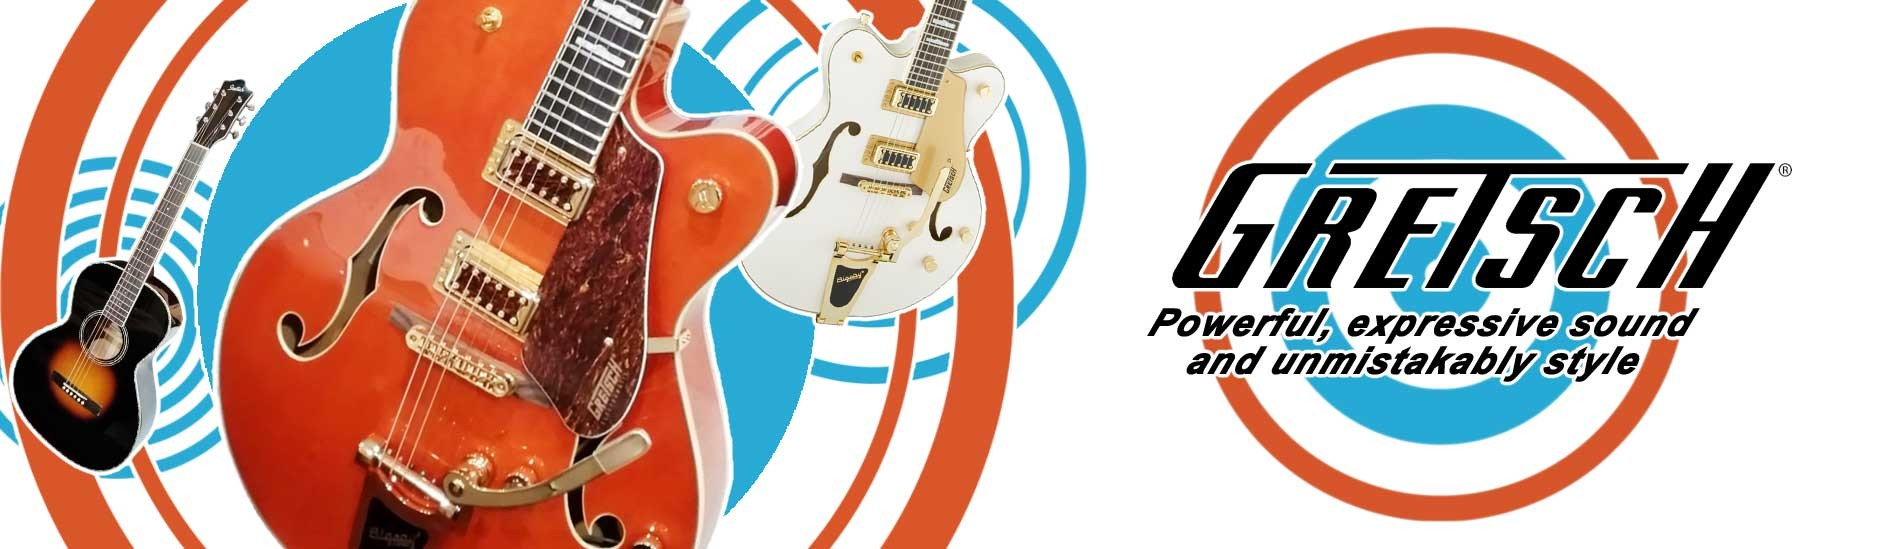 Gretsch Guitars - Powerful, expressive sound and unmistakable style